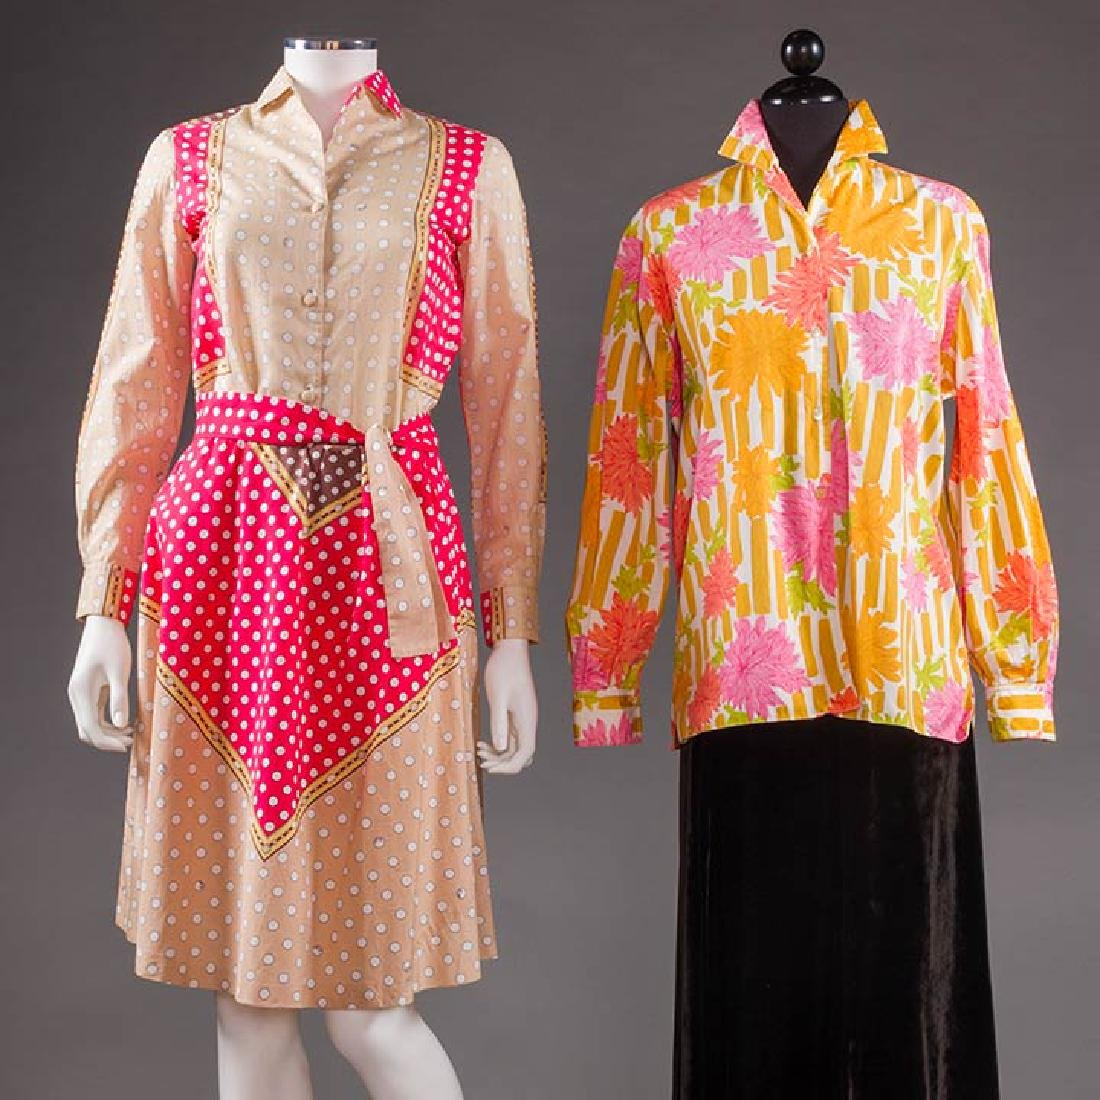 TWO PUCCI GARMENTS, 1960s